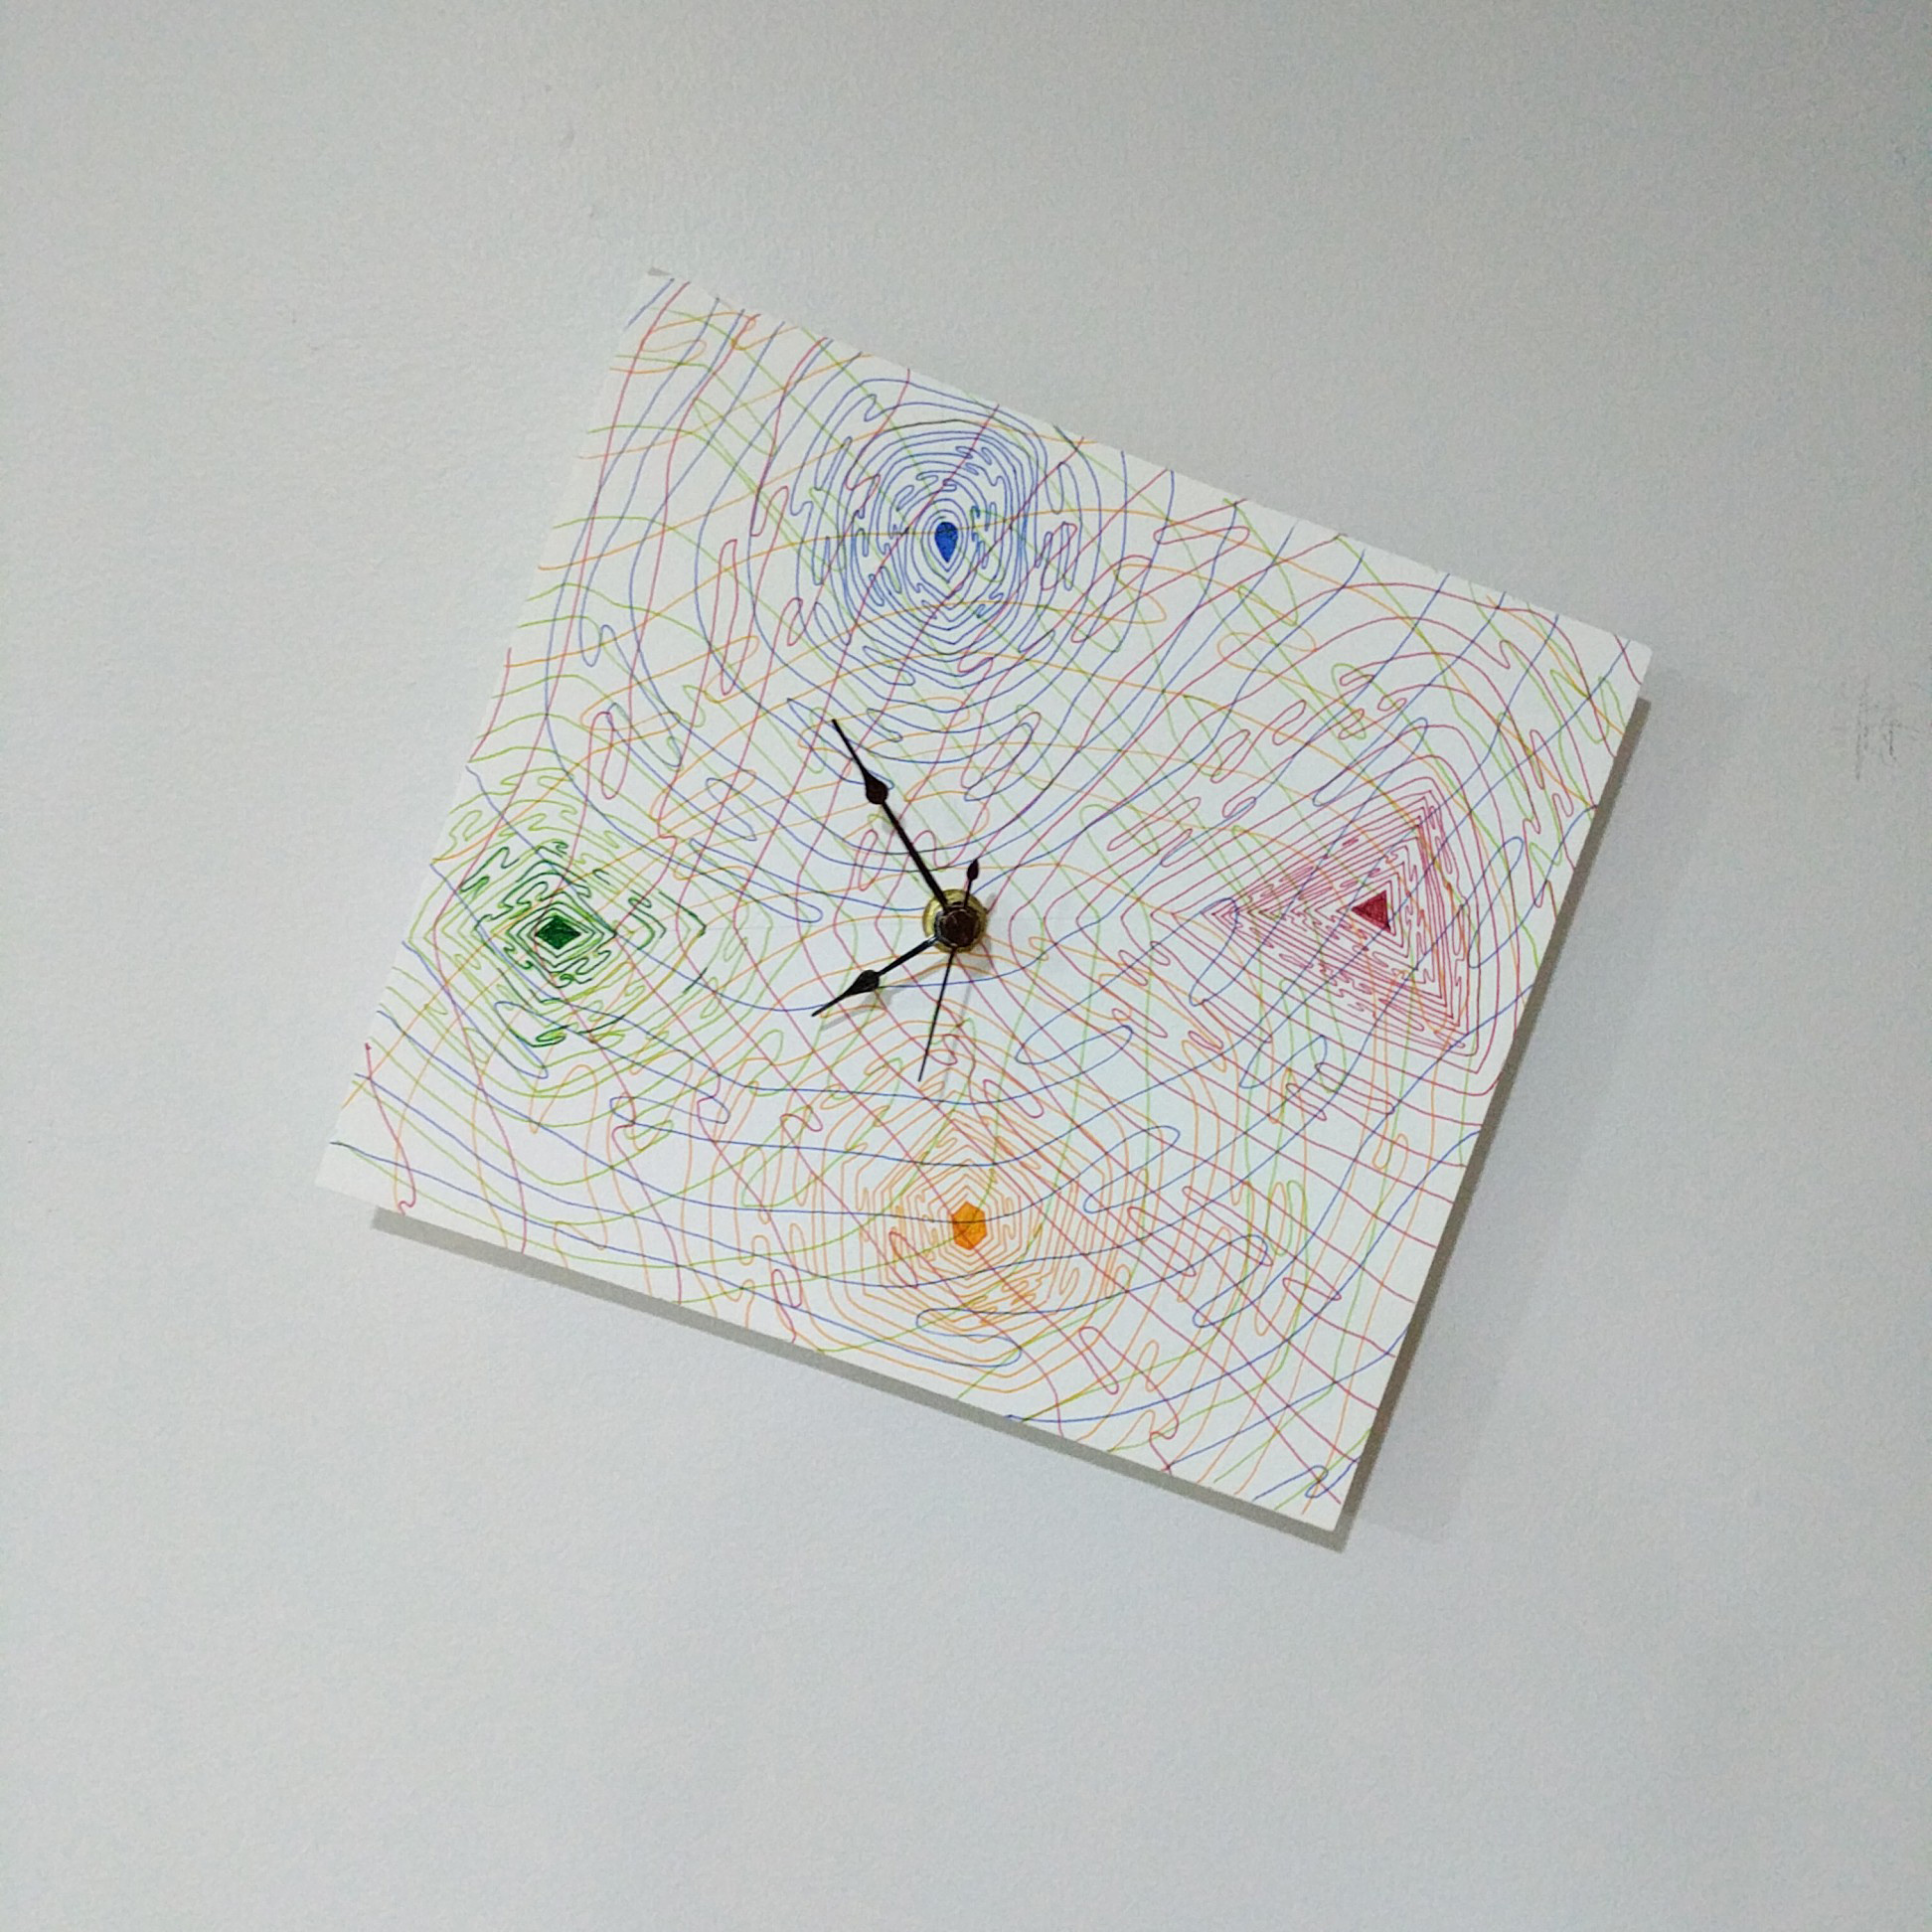 Timepiece (2018). Medium - Marker on paper.